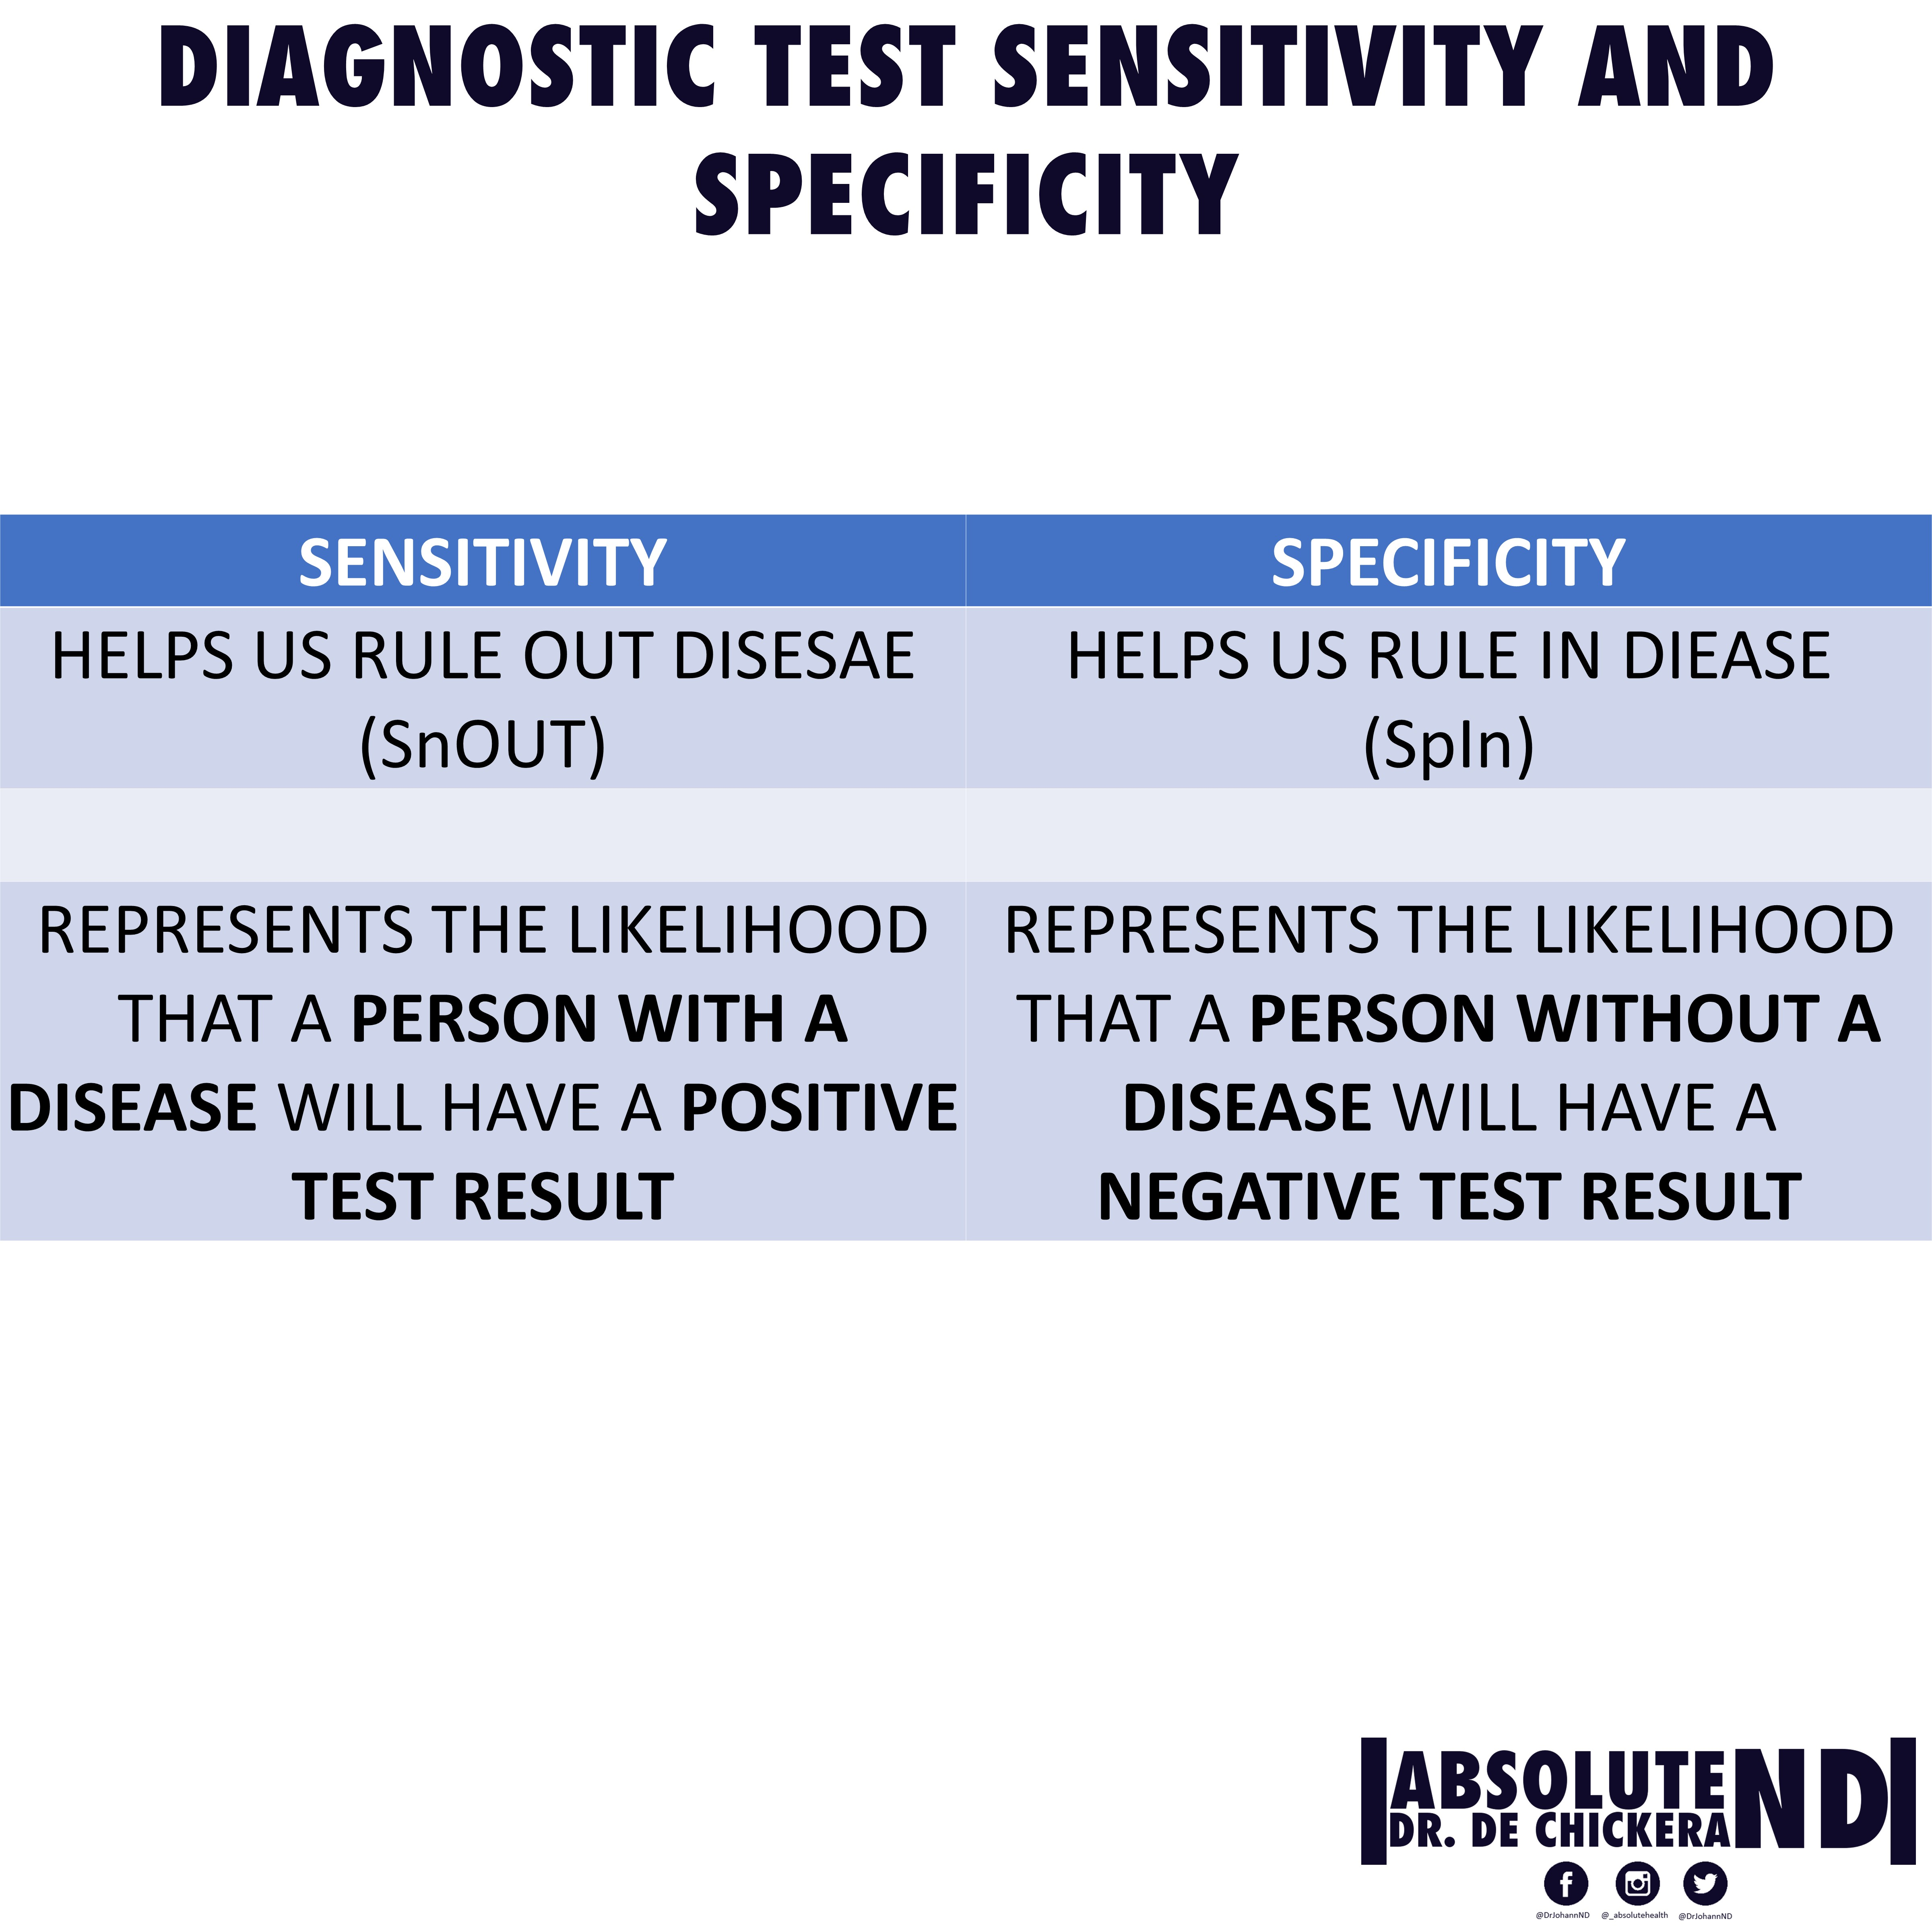 Test Sensitivity and Specificity Summary image